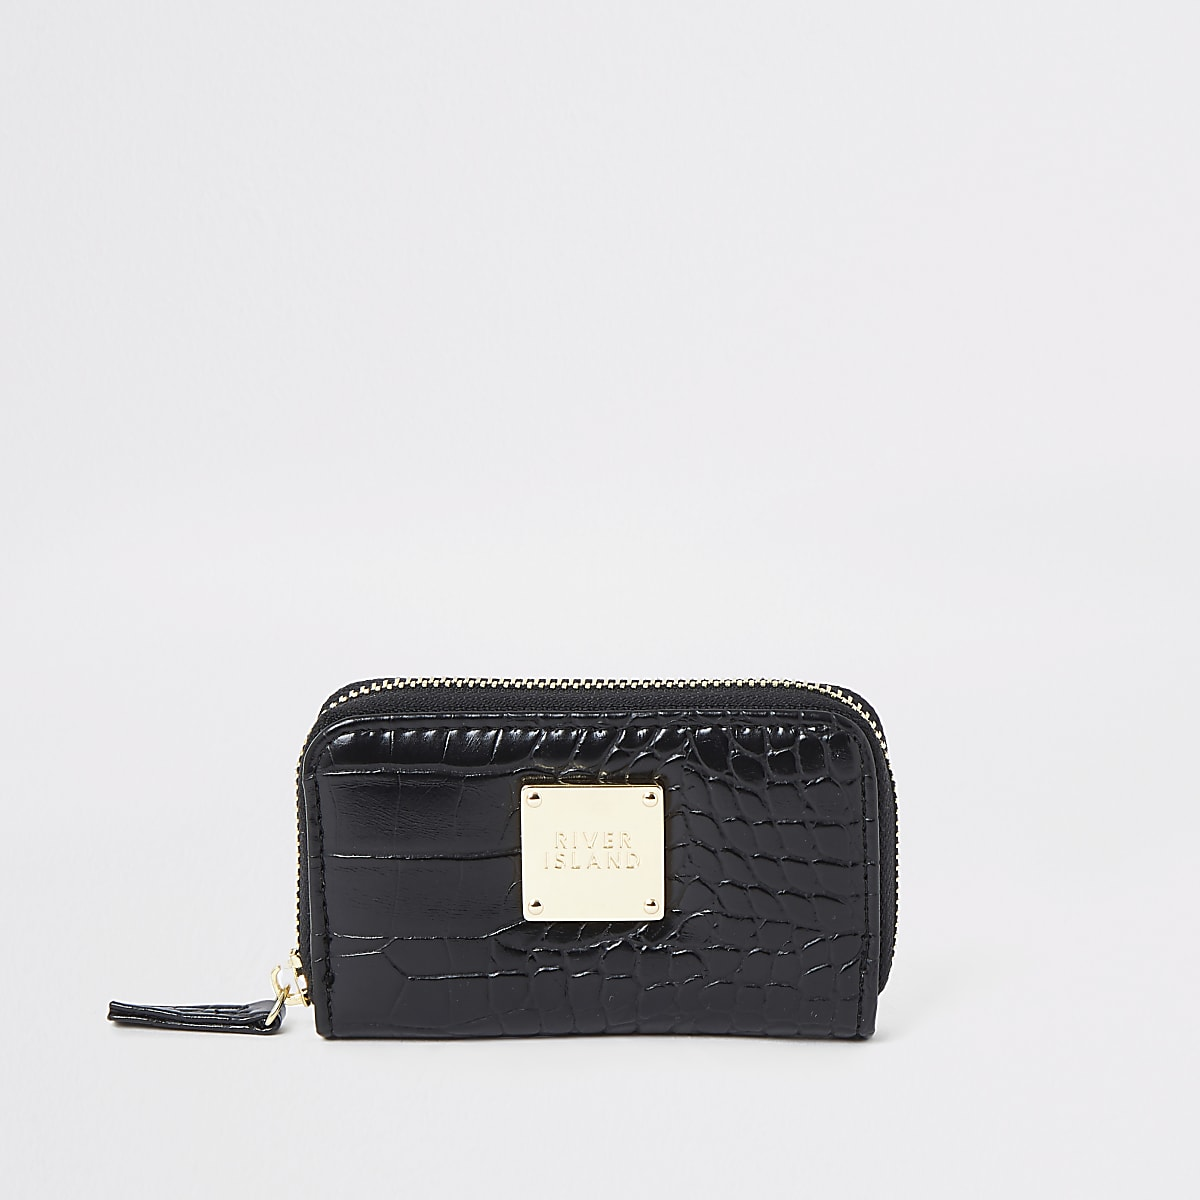 Black croc mini zip around purse